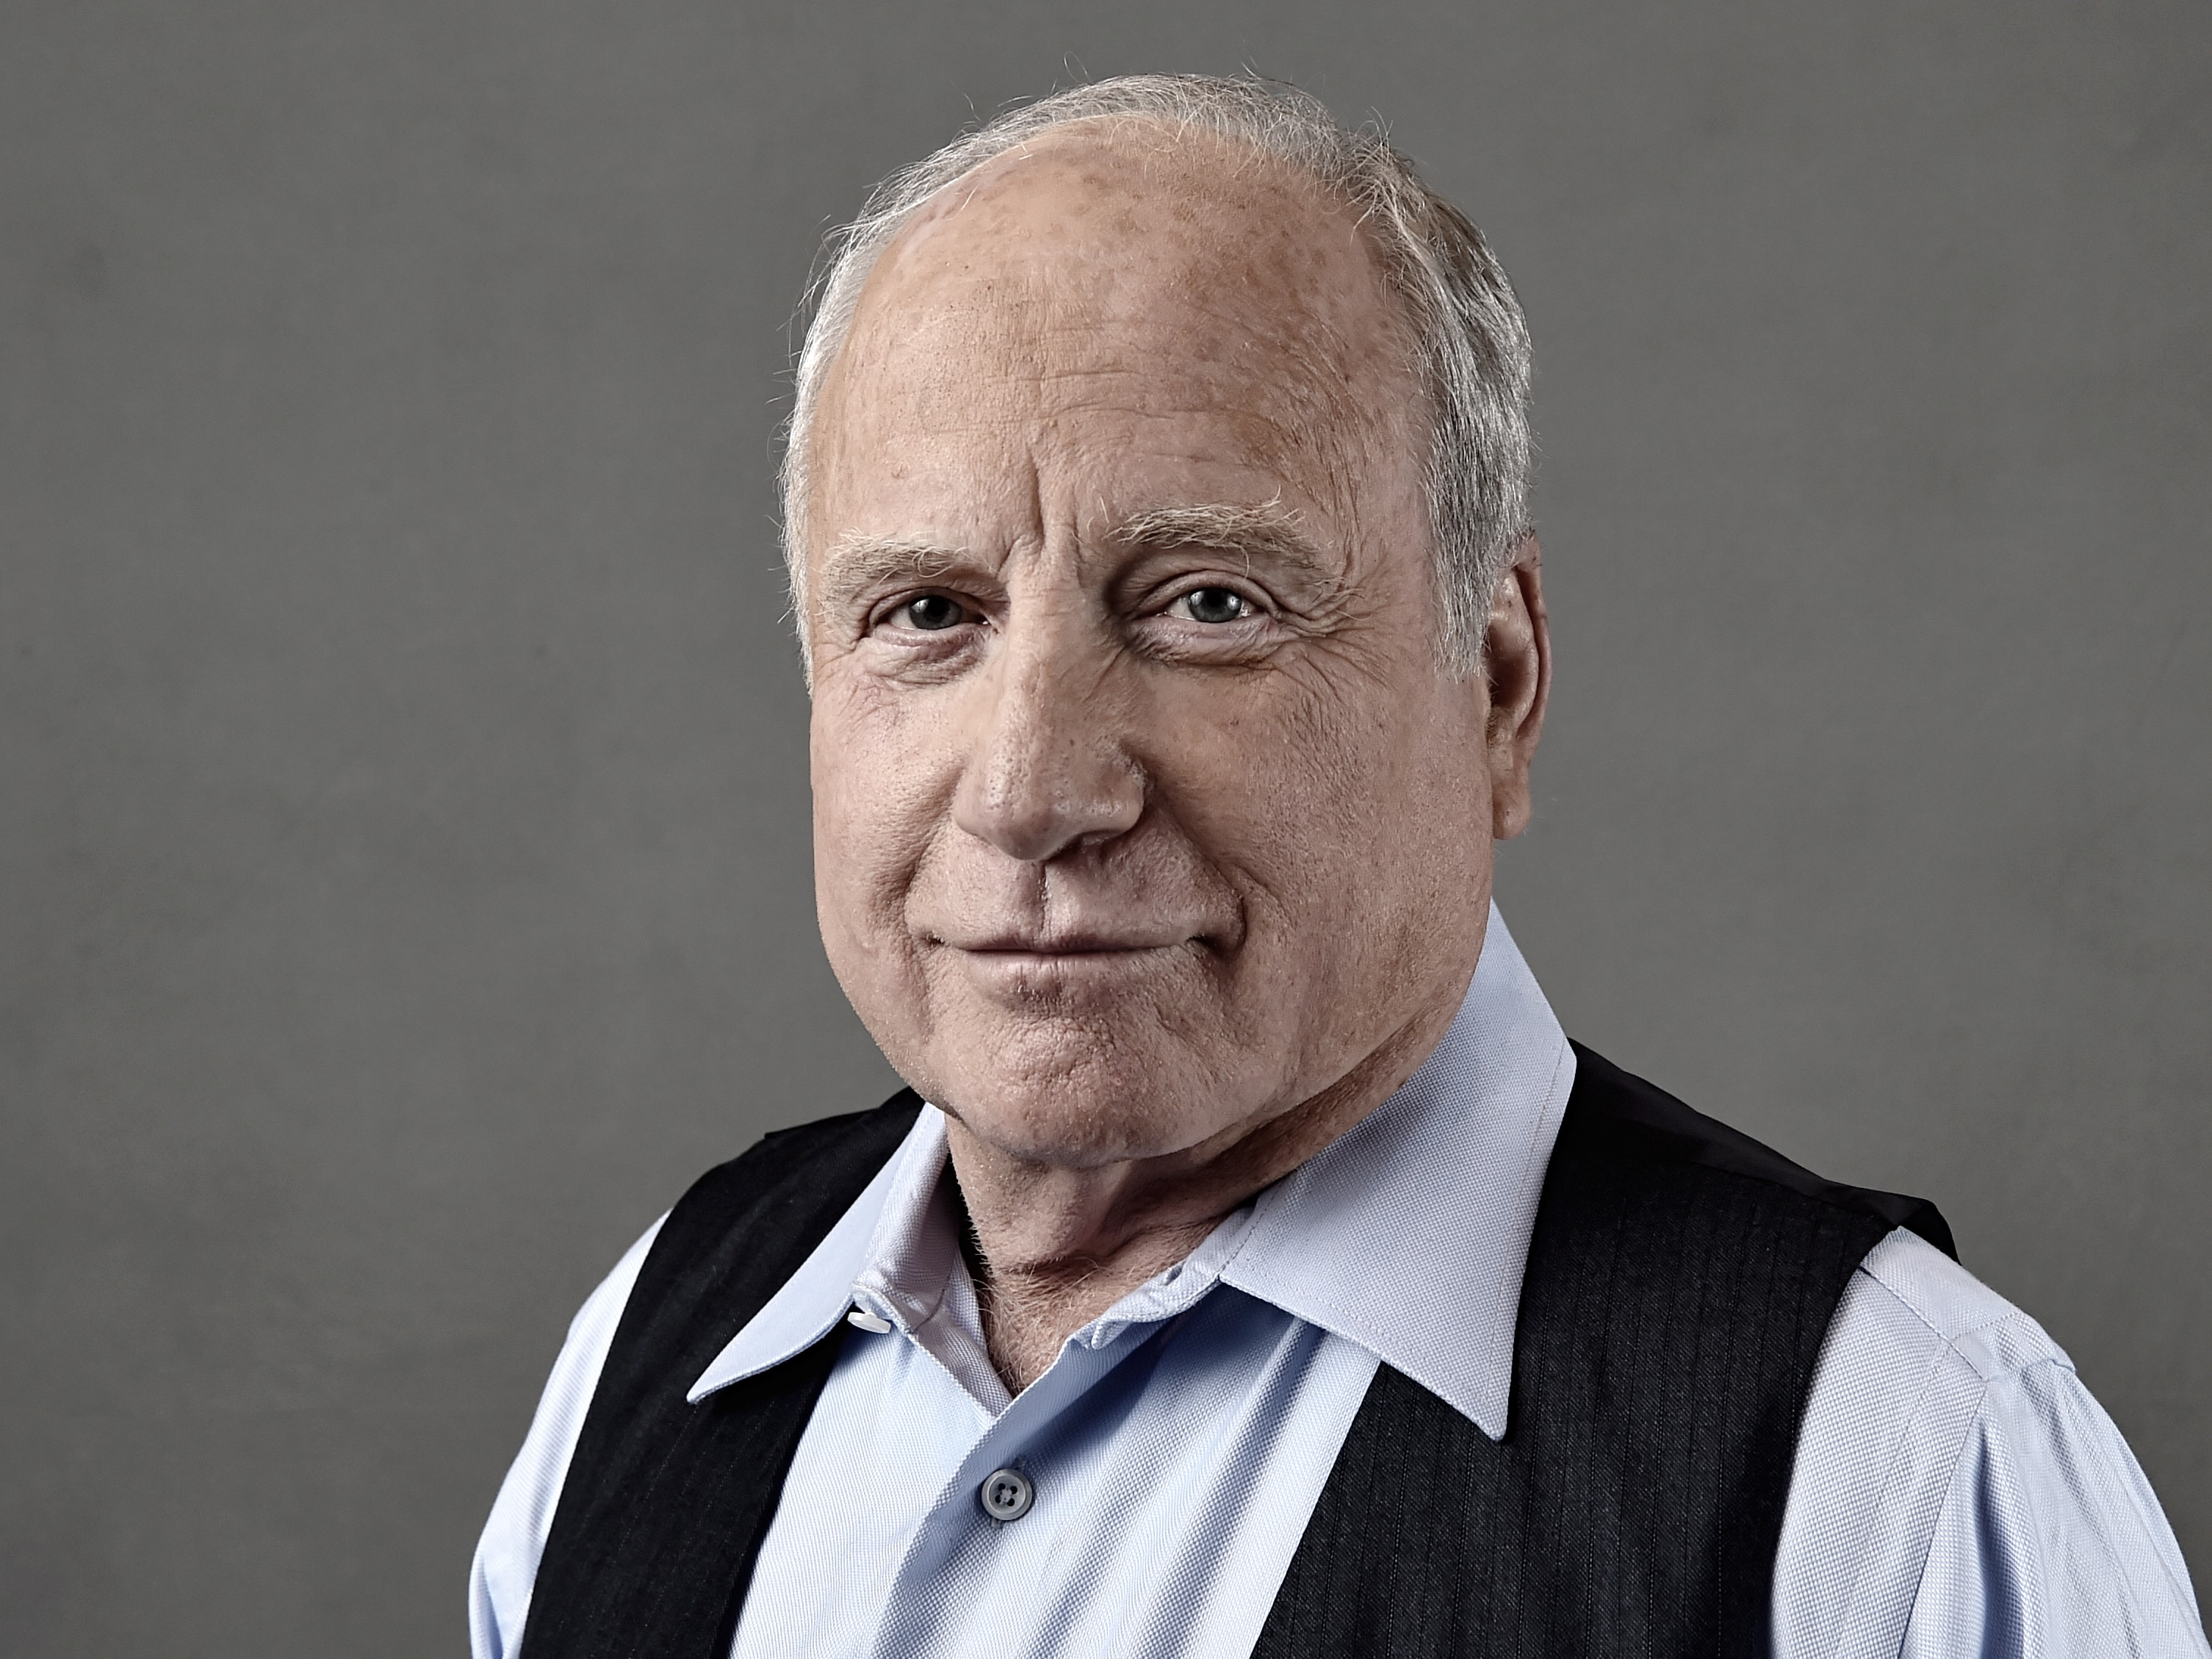 Richard Dreyfuss Wallpaper